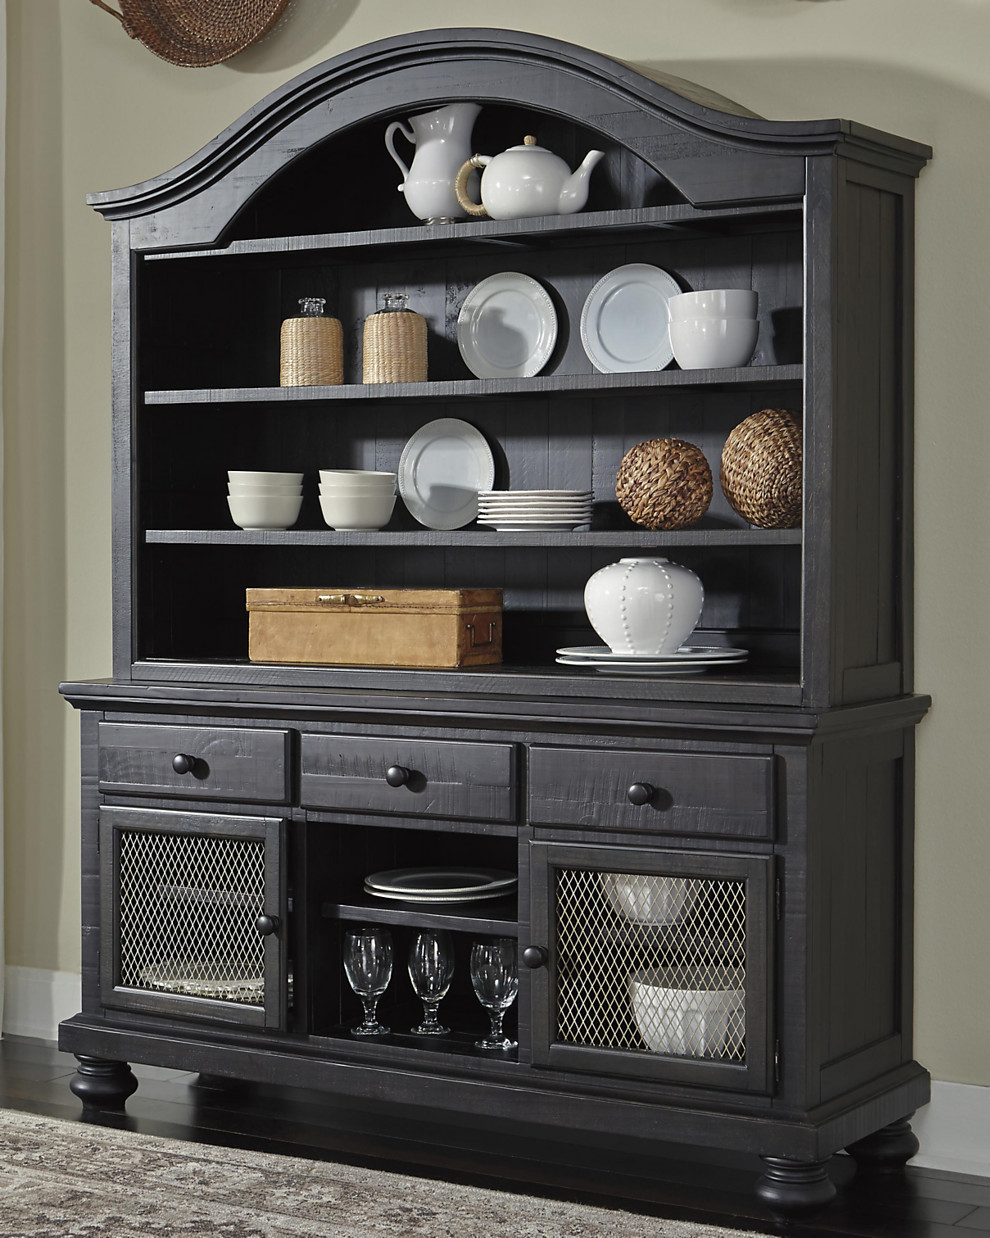 sharlowe dining room buffet corporate website of ashley dining room decor idea using this furniture